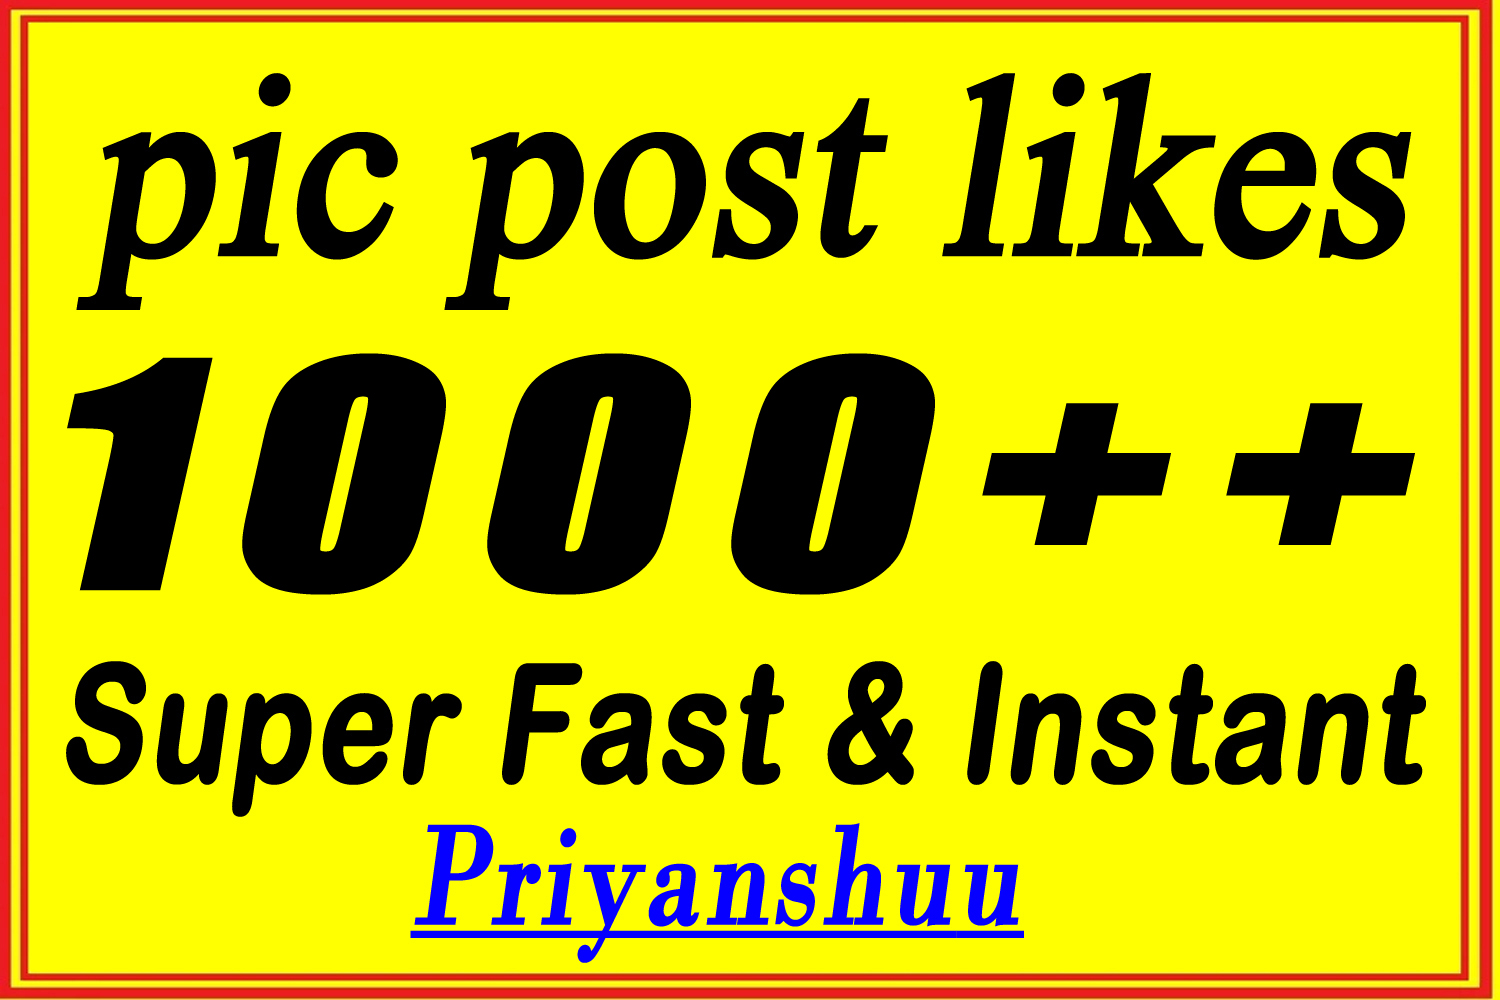 instant 1000+ picture post promotion marketing in 4 hours